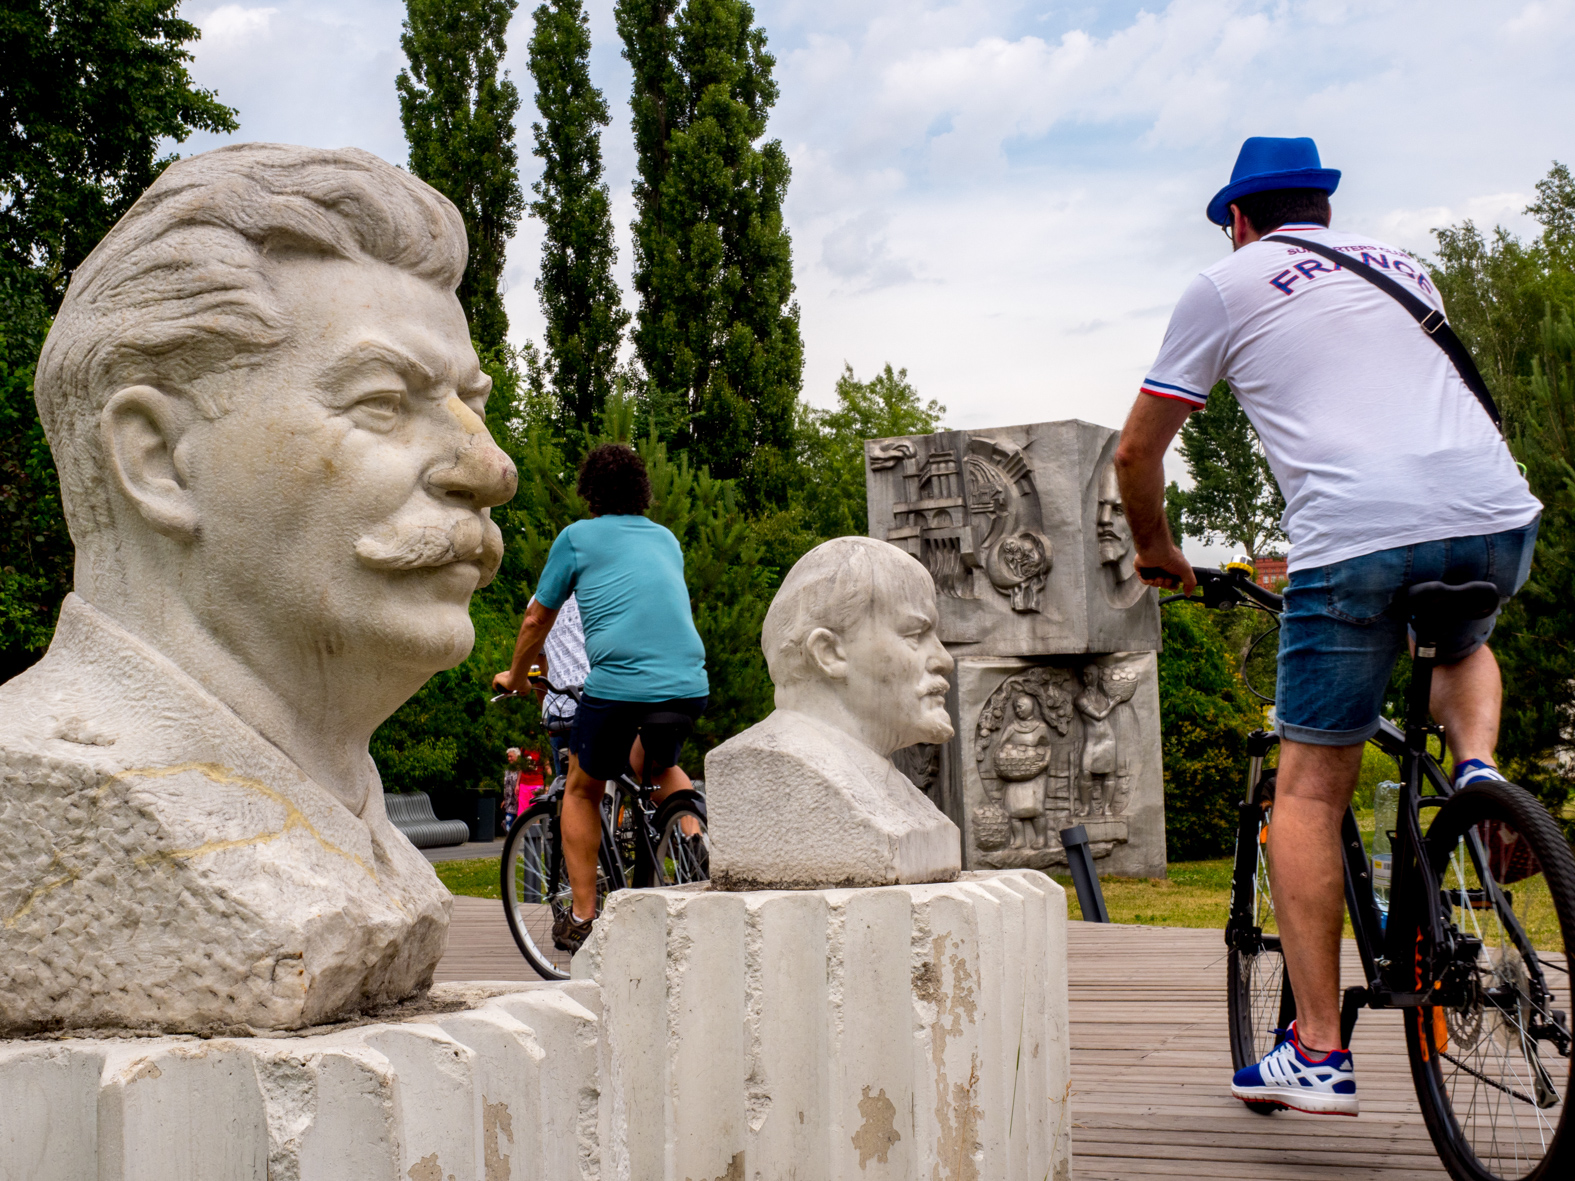 Supporters club France members cycle through a Soviet sculpture park located at Sssr Oplot Mira, Moscow. Vladimir Ilyich Ulyanov, better known by the alias Lenin, was a Russian communist revolutionary, politician and political theorist. He served as head of government of Soviet Russia from 1917 to 1924 and of the Soviet Union from 1922 to 1924. The 21st FIFA World Cup football tournament took place in Russia in 2018. It was the first World Cup to be held in Eastern Europe and the eleventh time that it has been held in Europe. For the first time the tournament took place on two continents – Europe and Asia. All but two of the stadium venues were in European Russia.